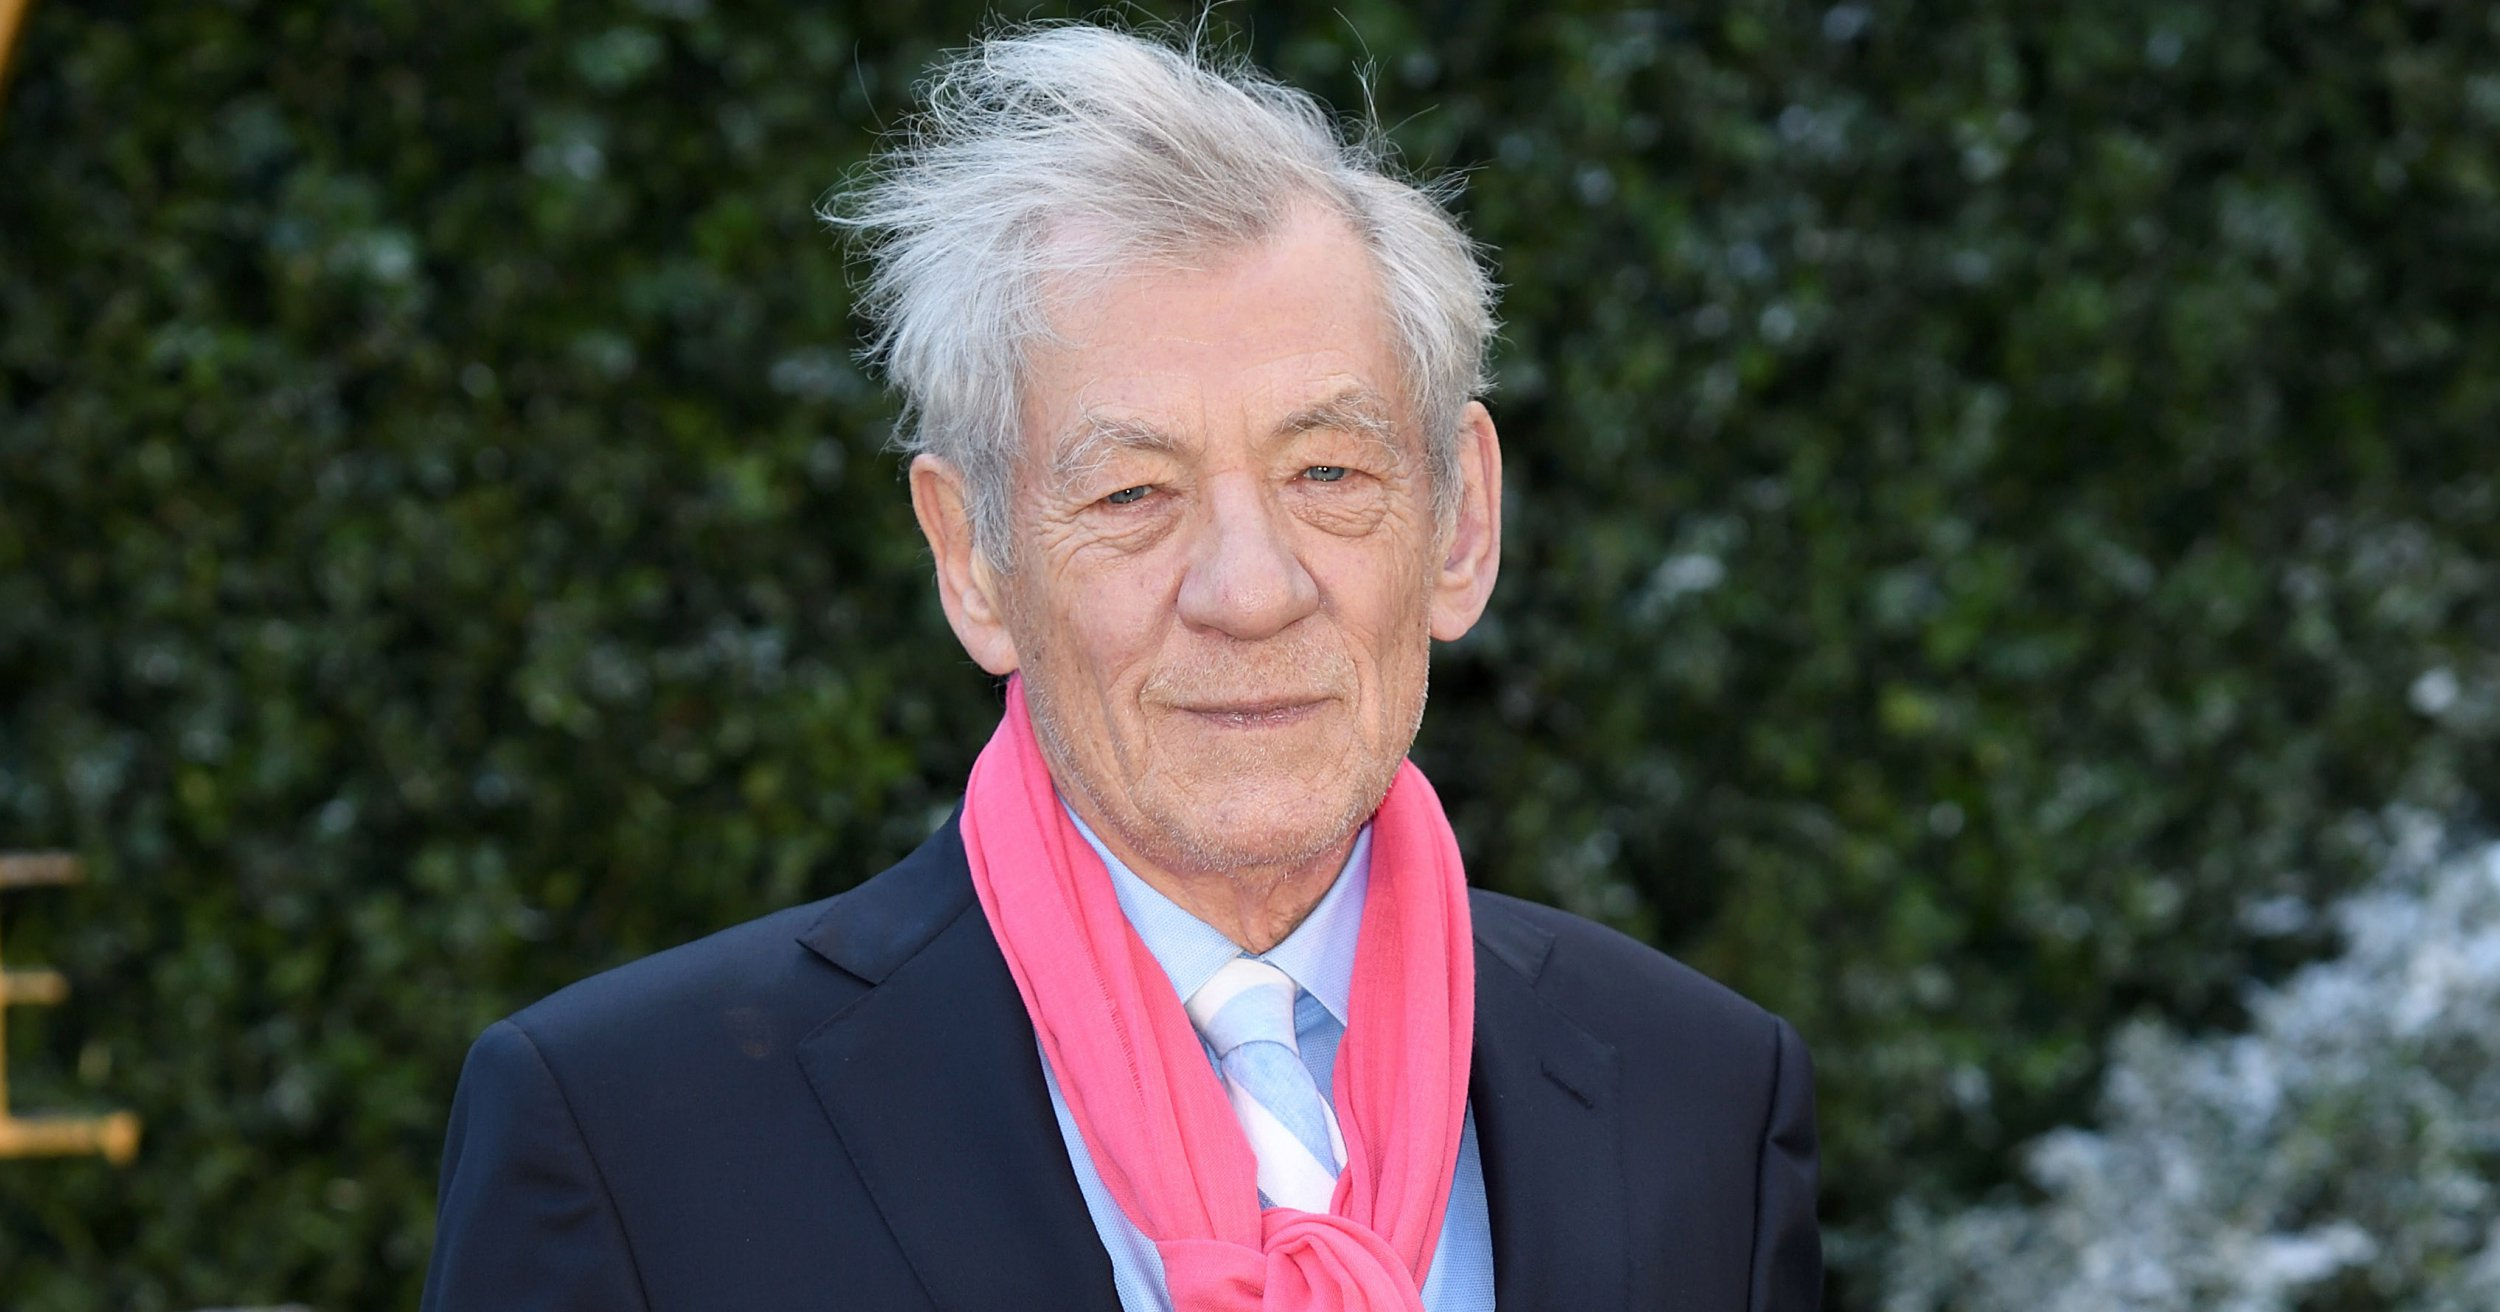 Sir Ian McKellen was 'glad' the world knew he was gay before knighthood